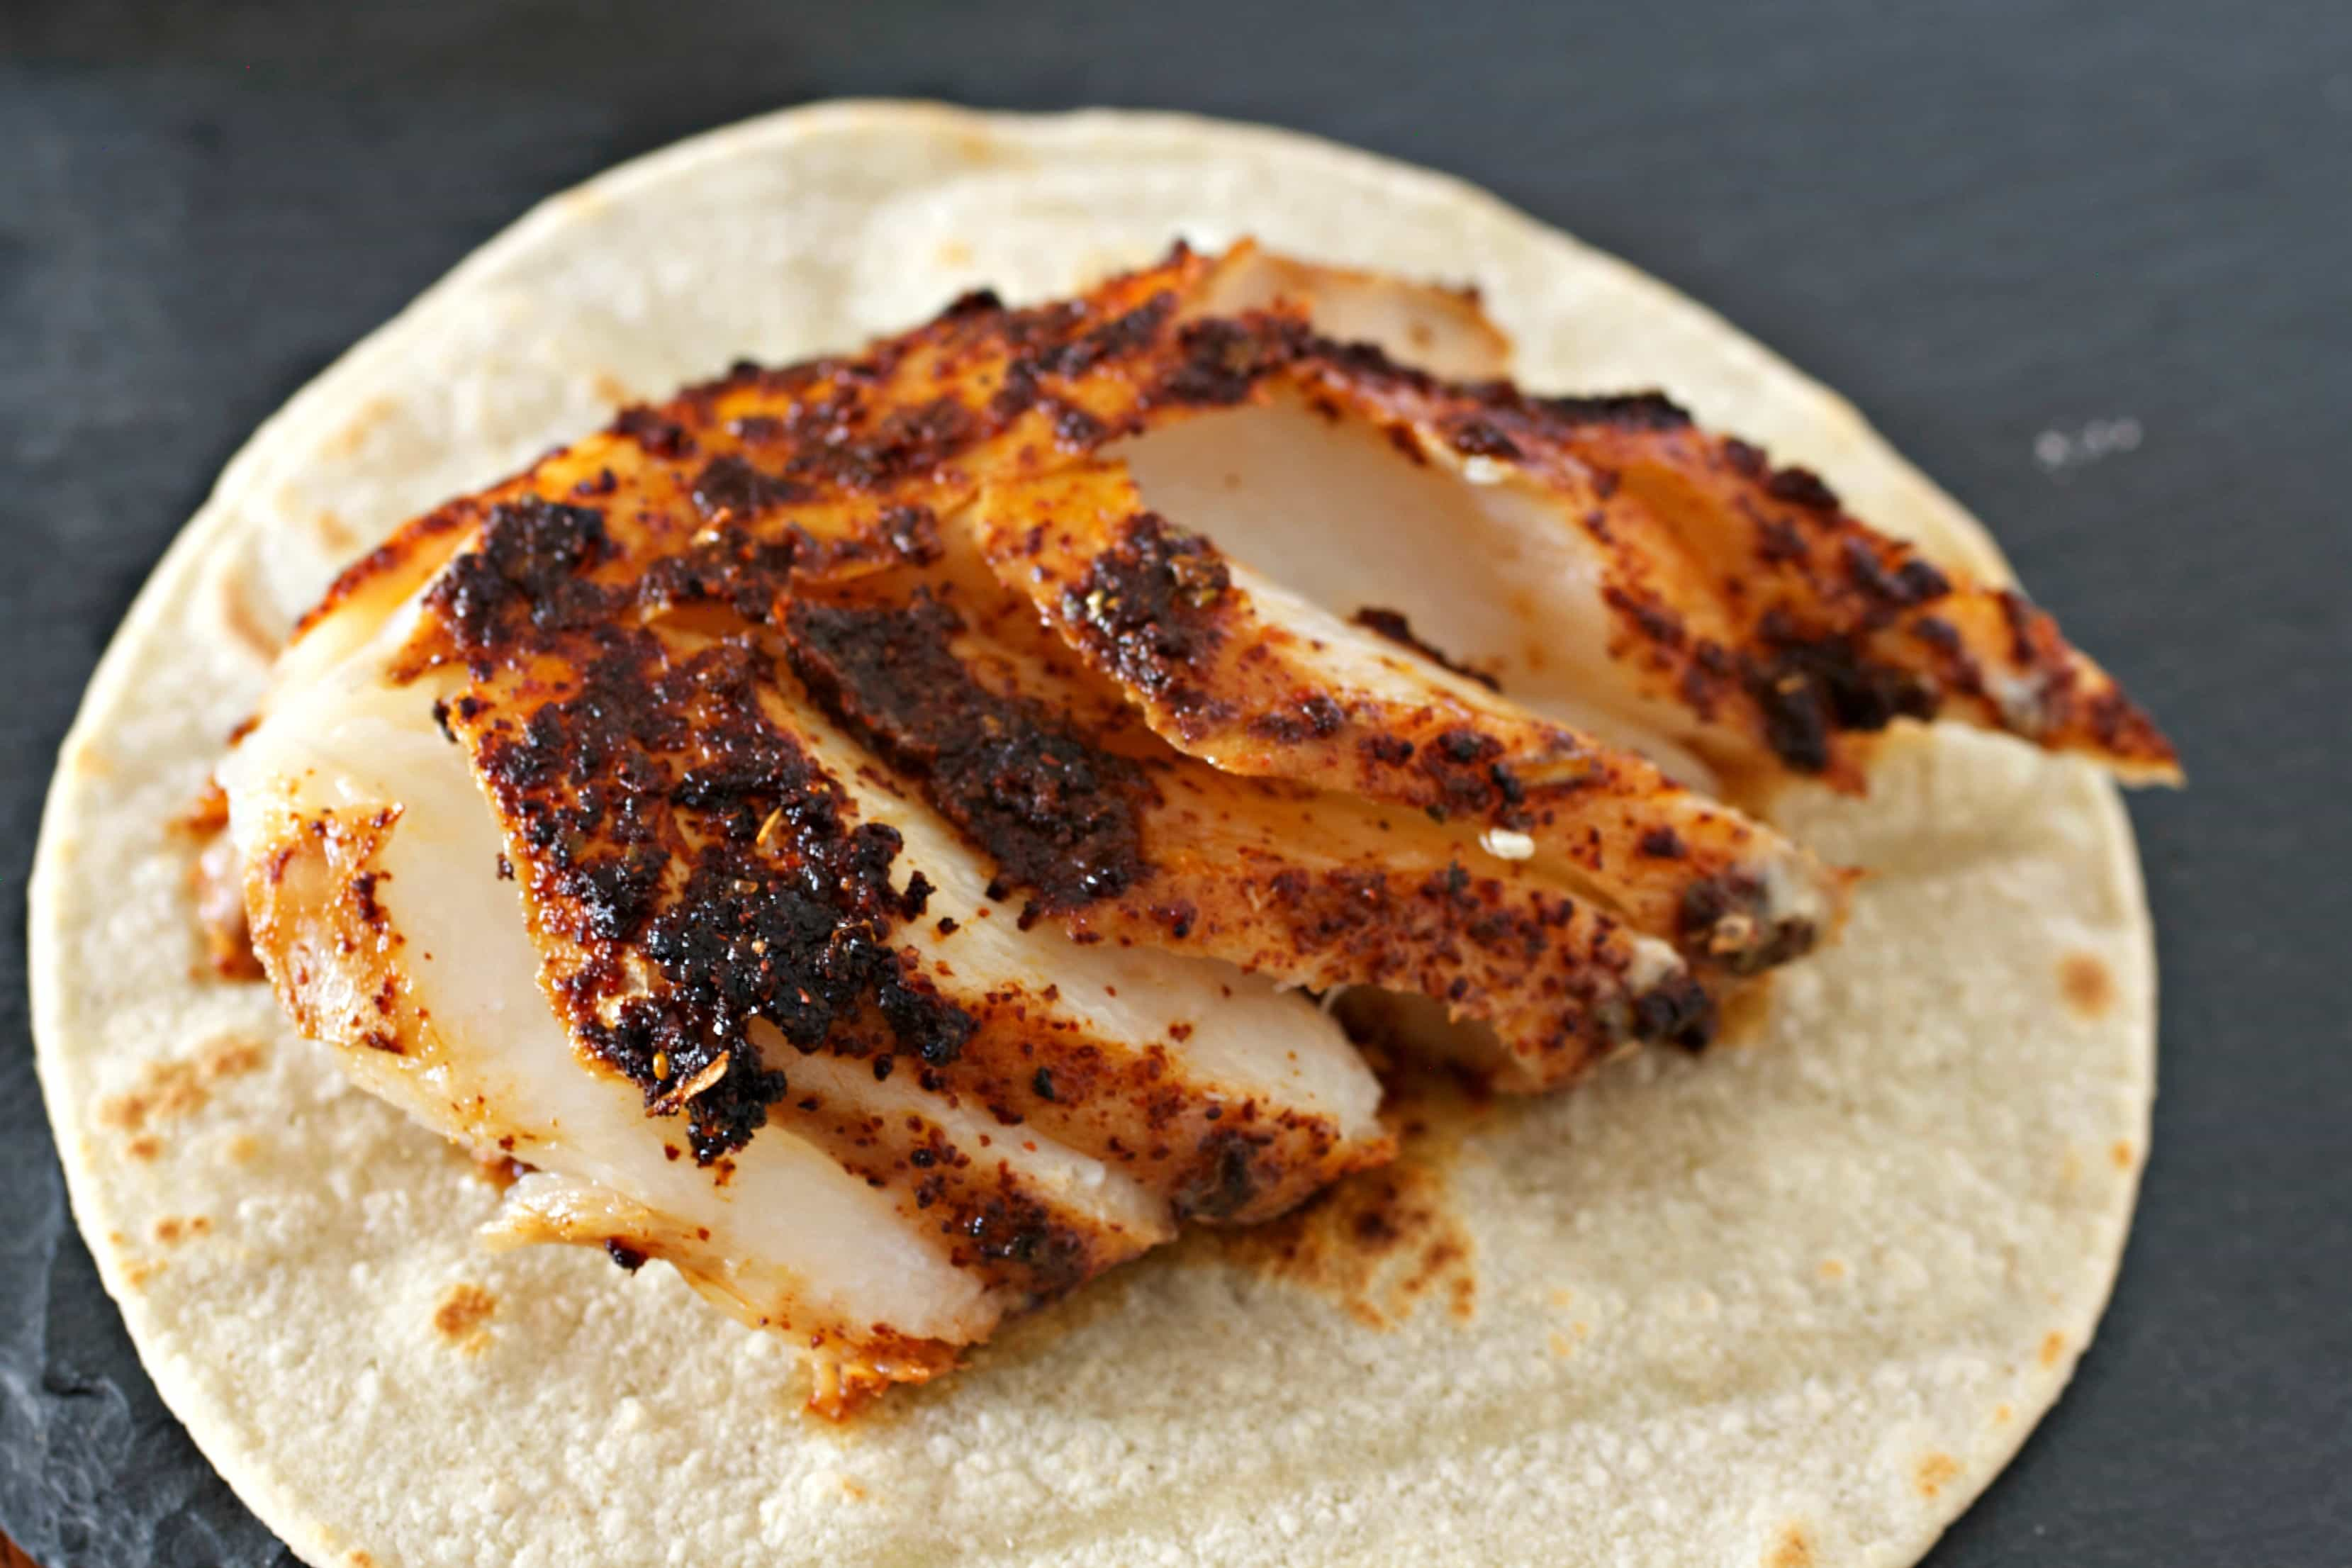 Mexican spiced fish on top of a corn tortilla.